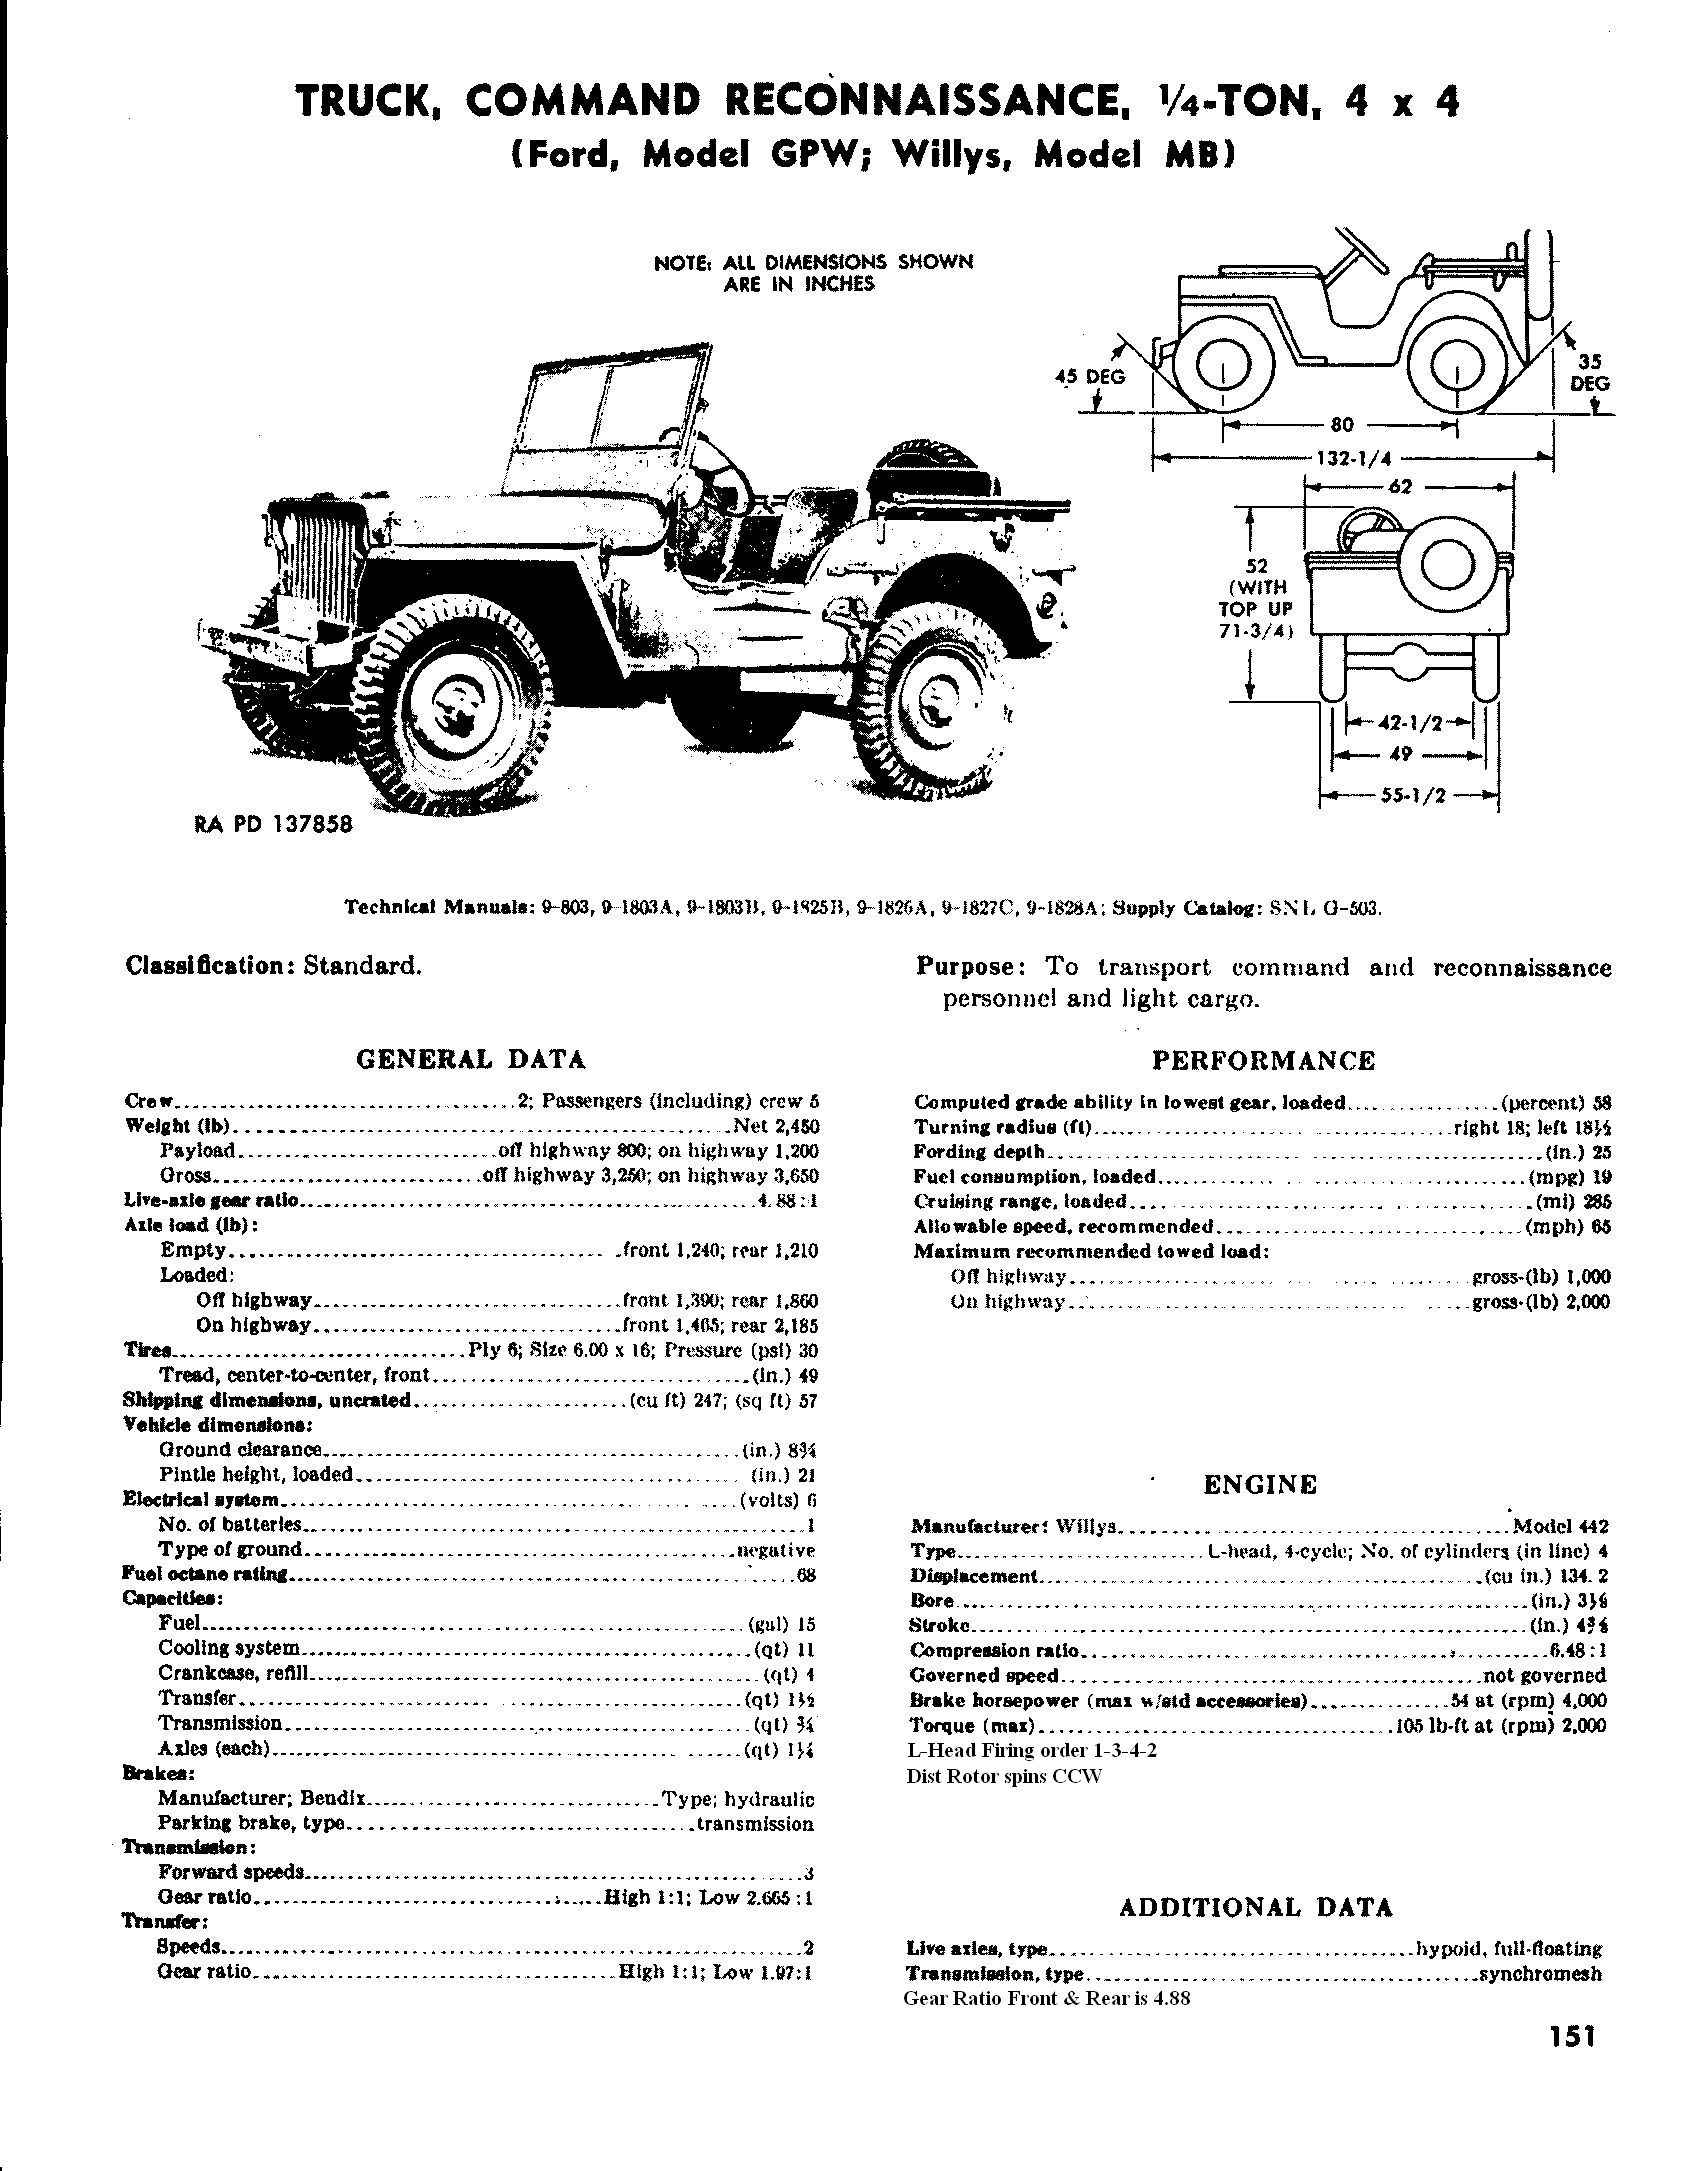 Willys Jeep Engine Numbers Industrial G503 Auto Emerson Pool Pump Wiring Diagram Get Free Image About Related With 1983 Wagoneer Alternator